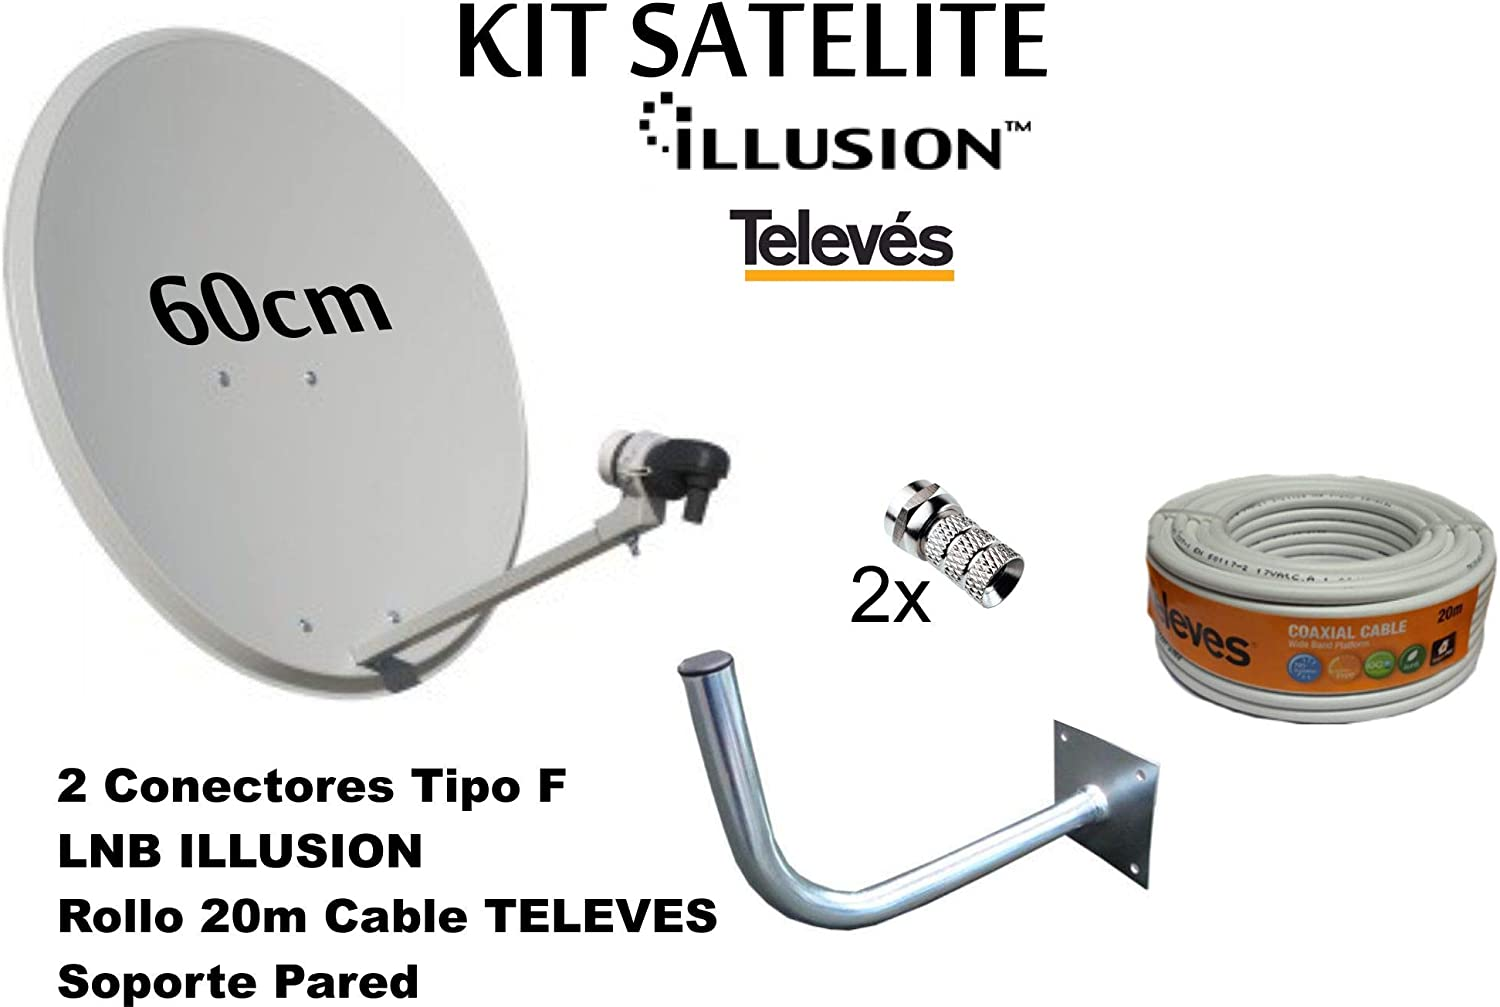 Kit Antena PARABOLICA 60cm Marca Tecatel + Soporte Pared + Rollo 20m TELEVES + LNB Illusion